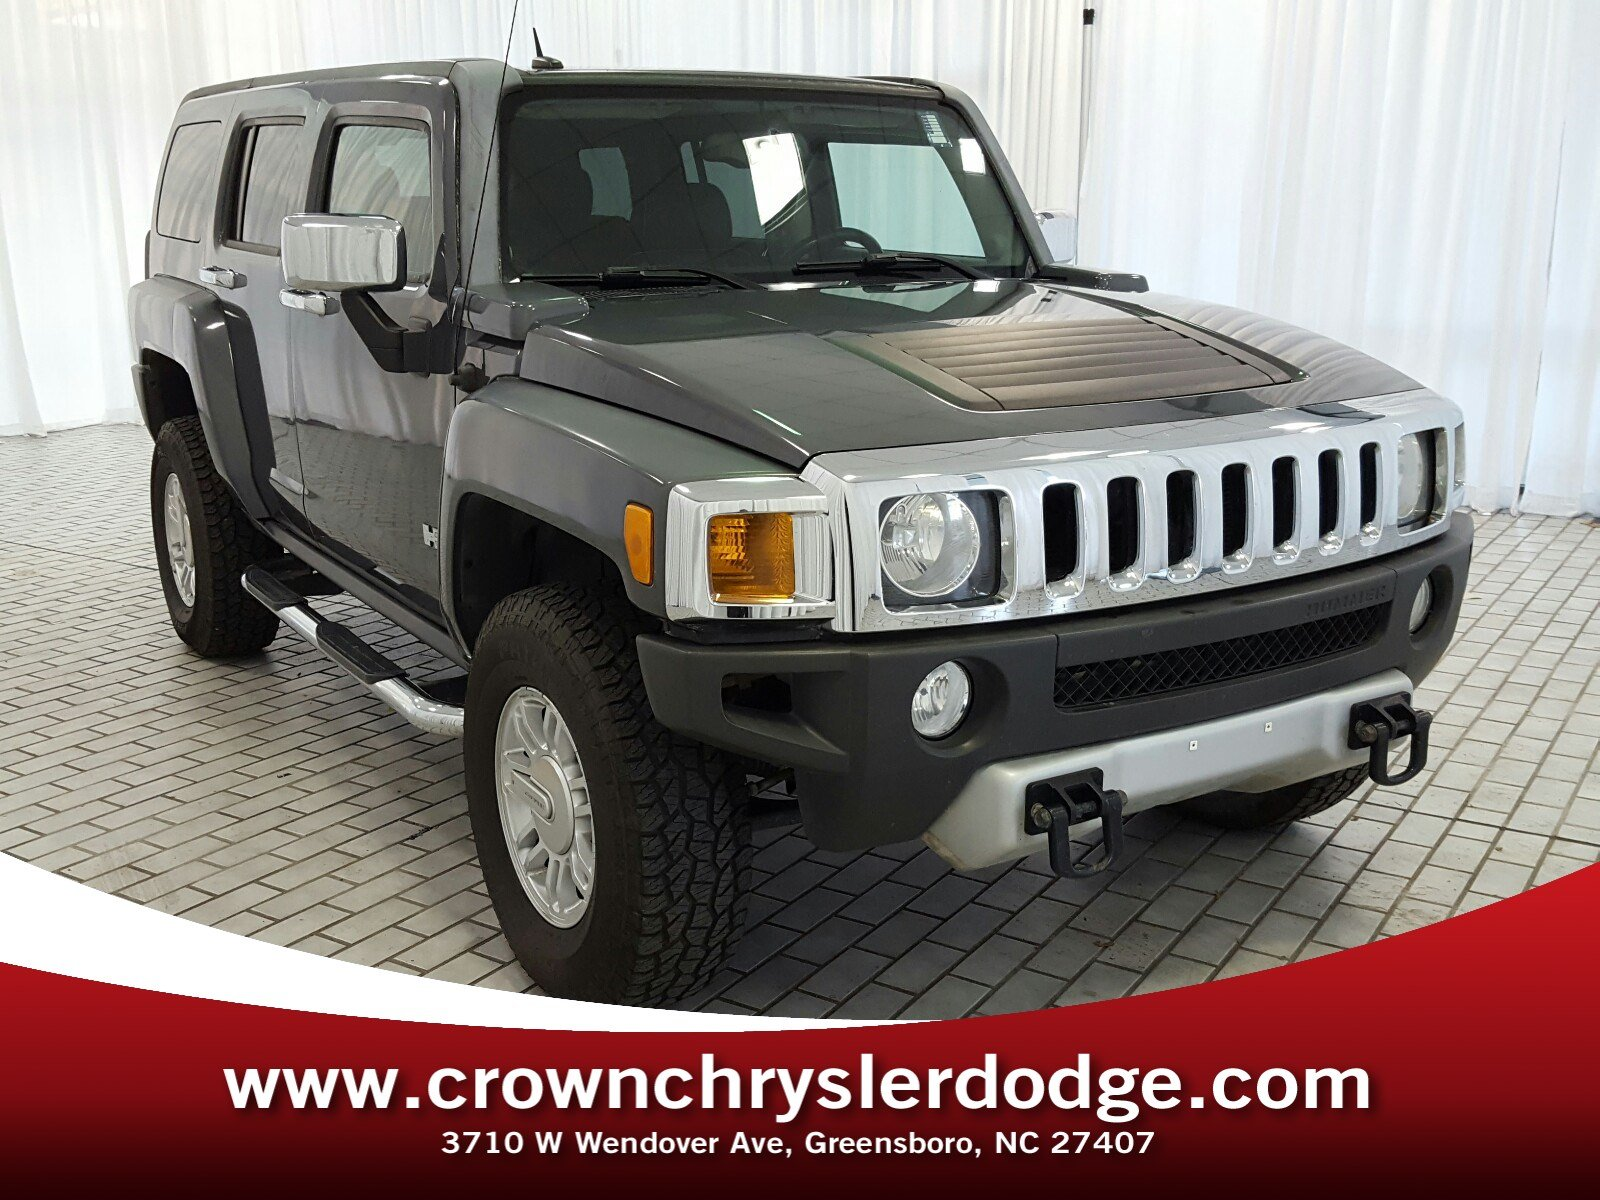 Hummer Cars In North Carolina For Sale ▷ Used Cars Buysellsearch